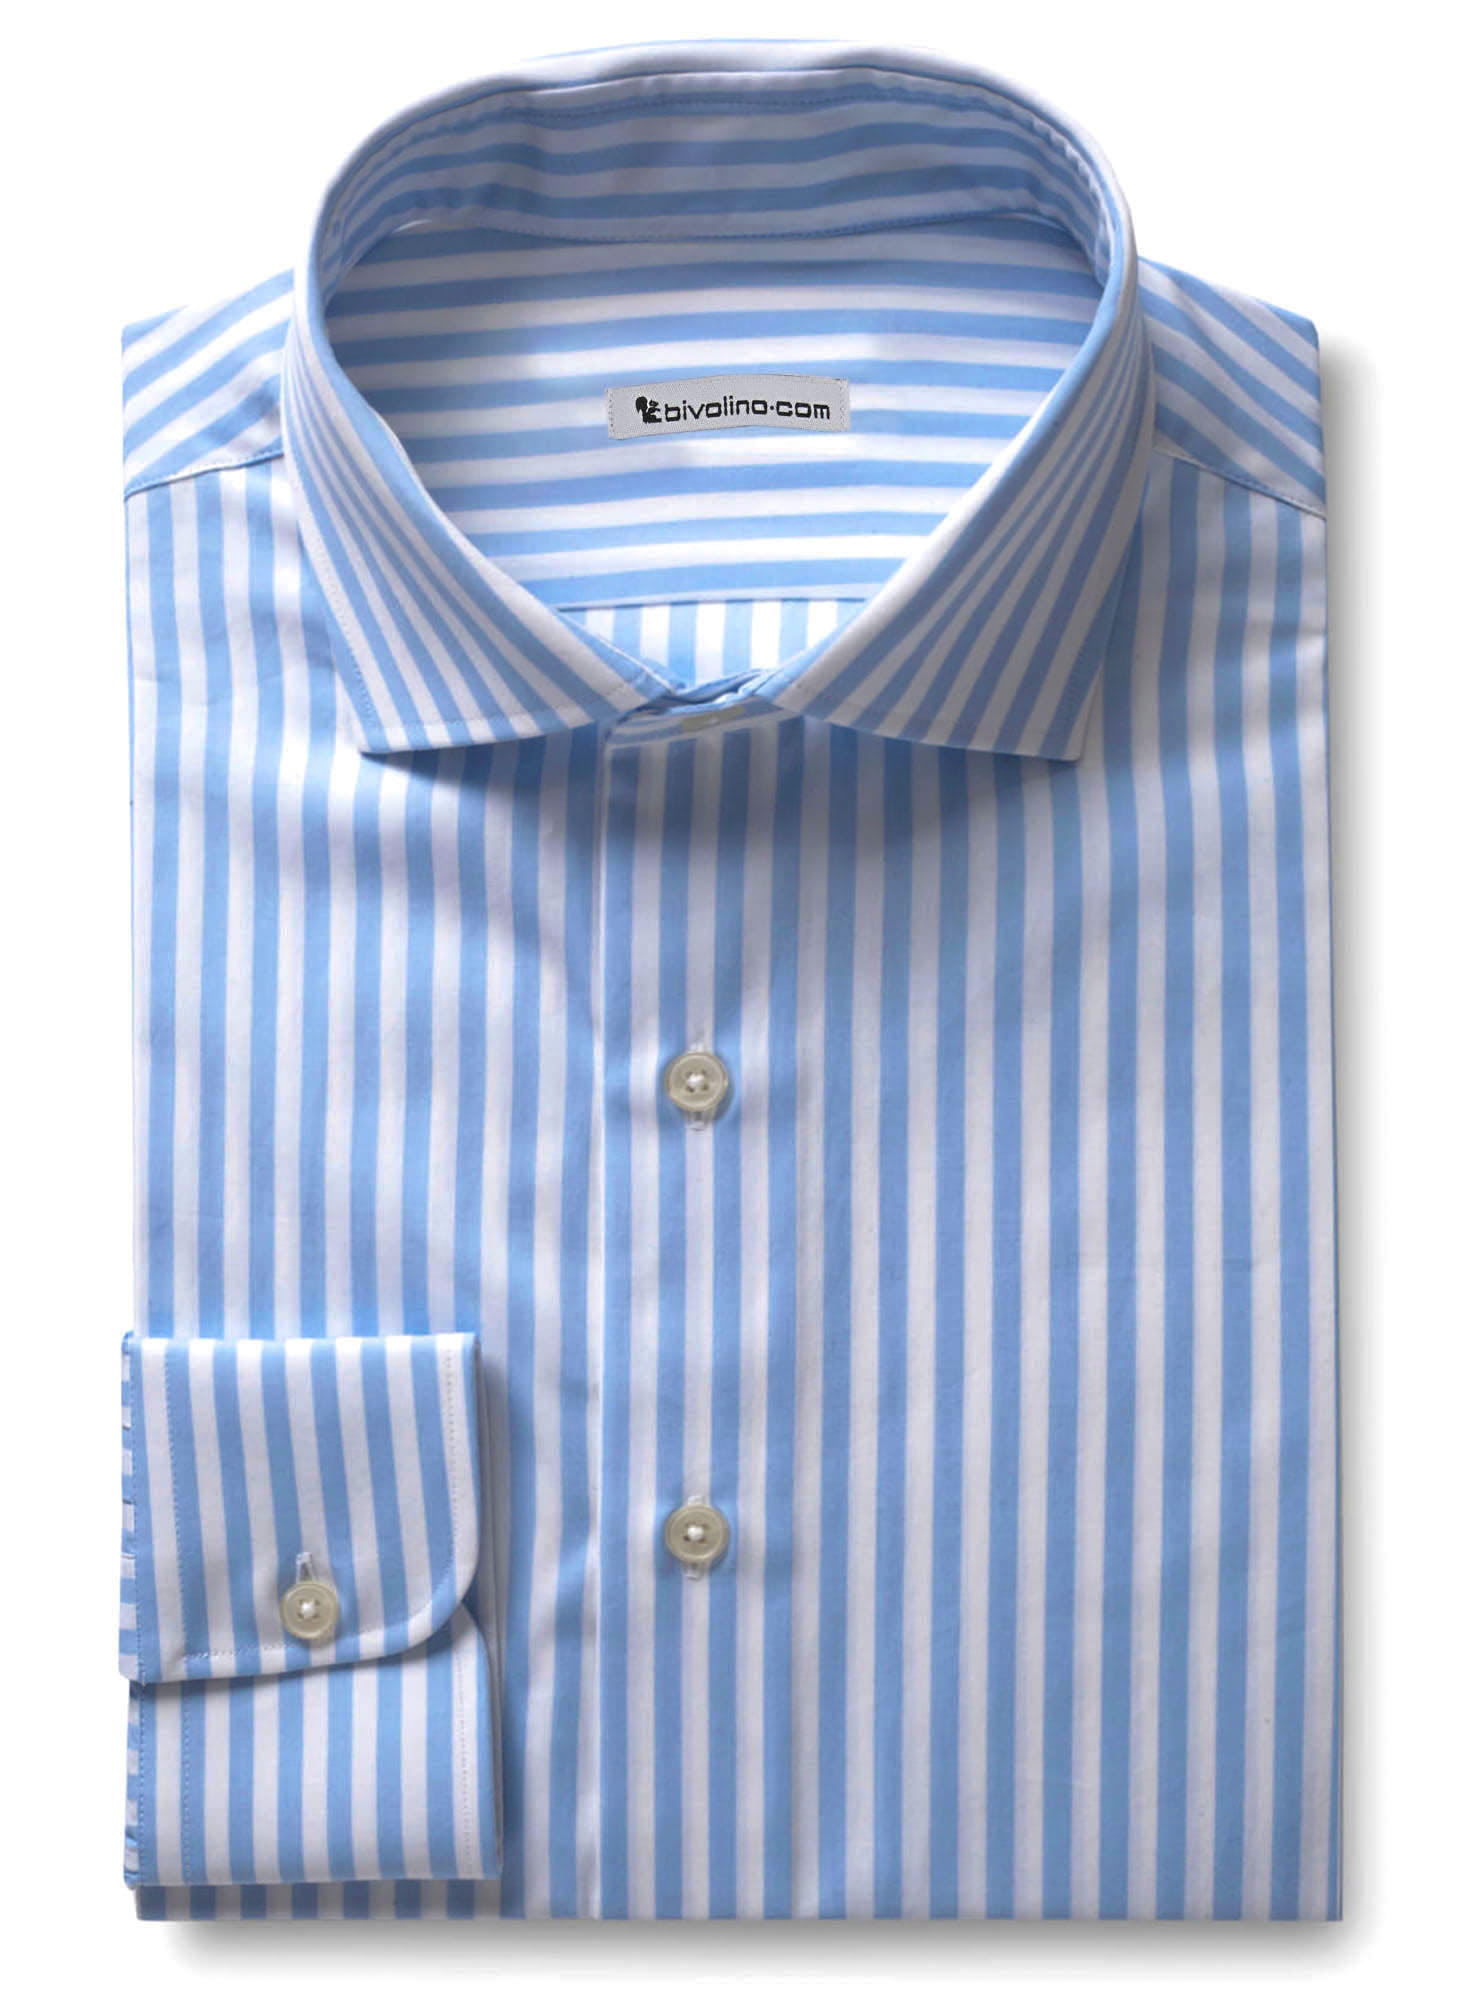 Vanzo - Poplin Striped shirt blue-white - WINDY 5